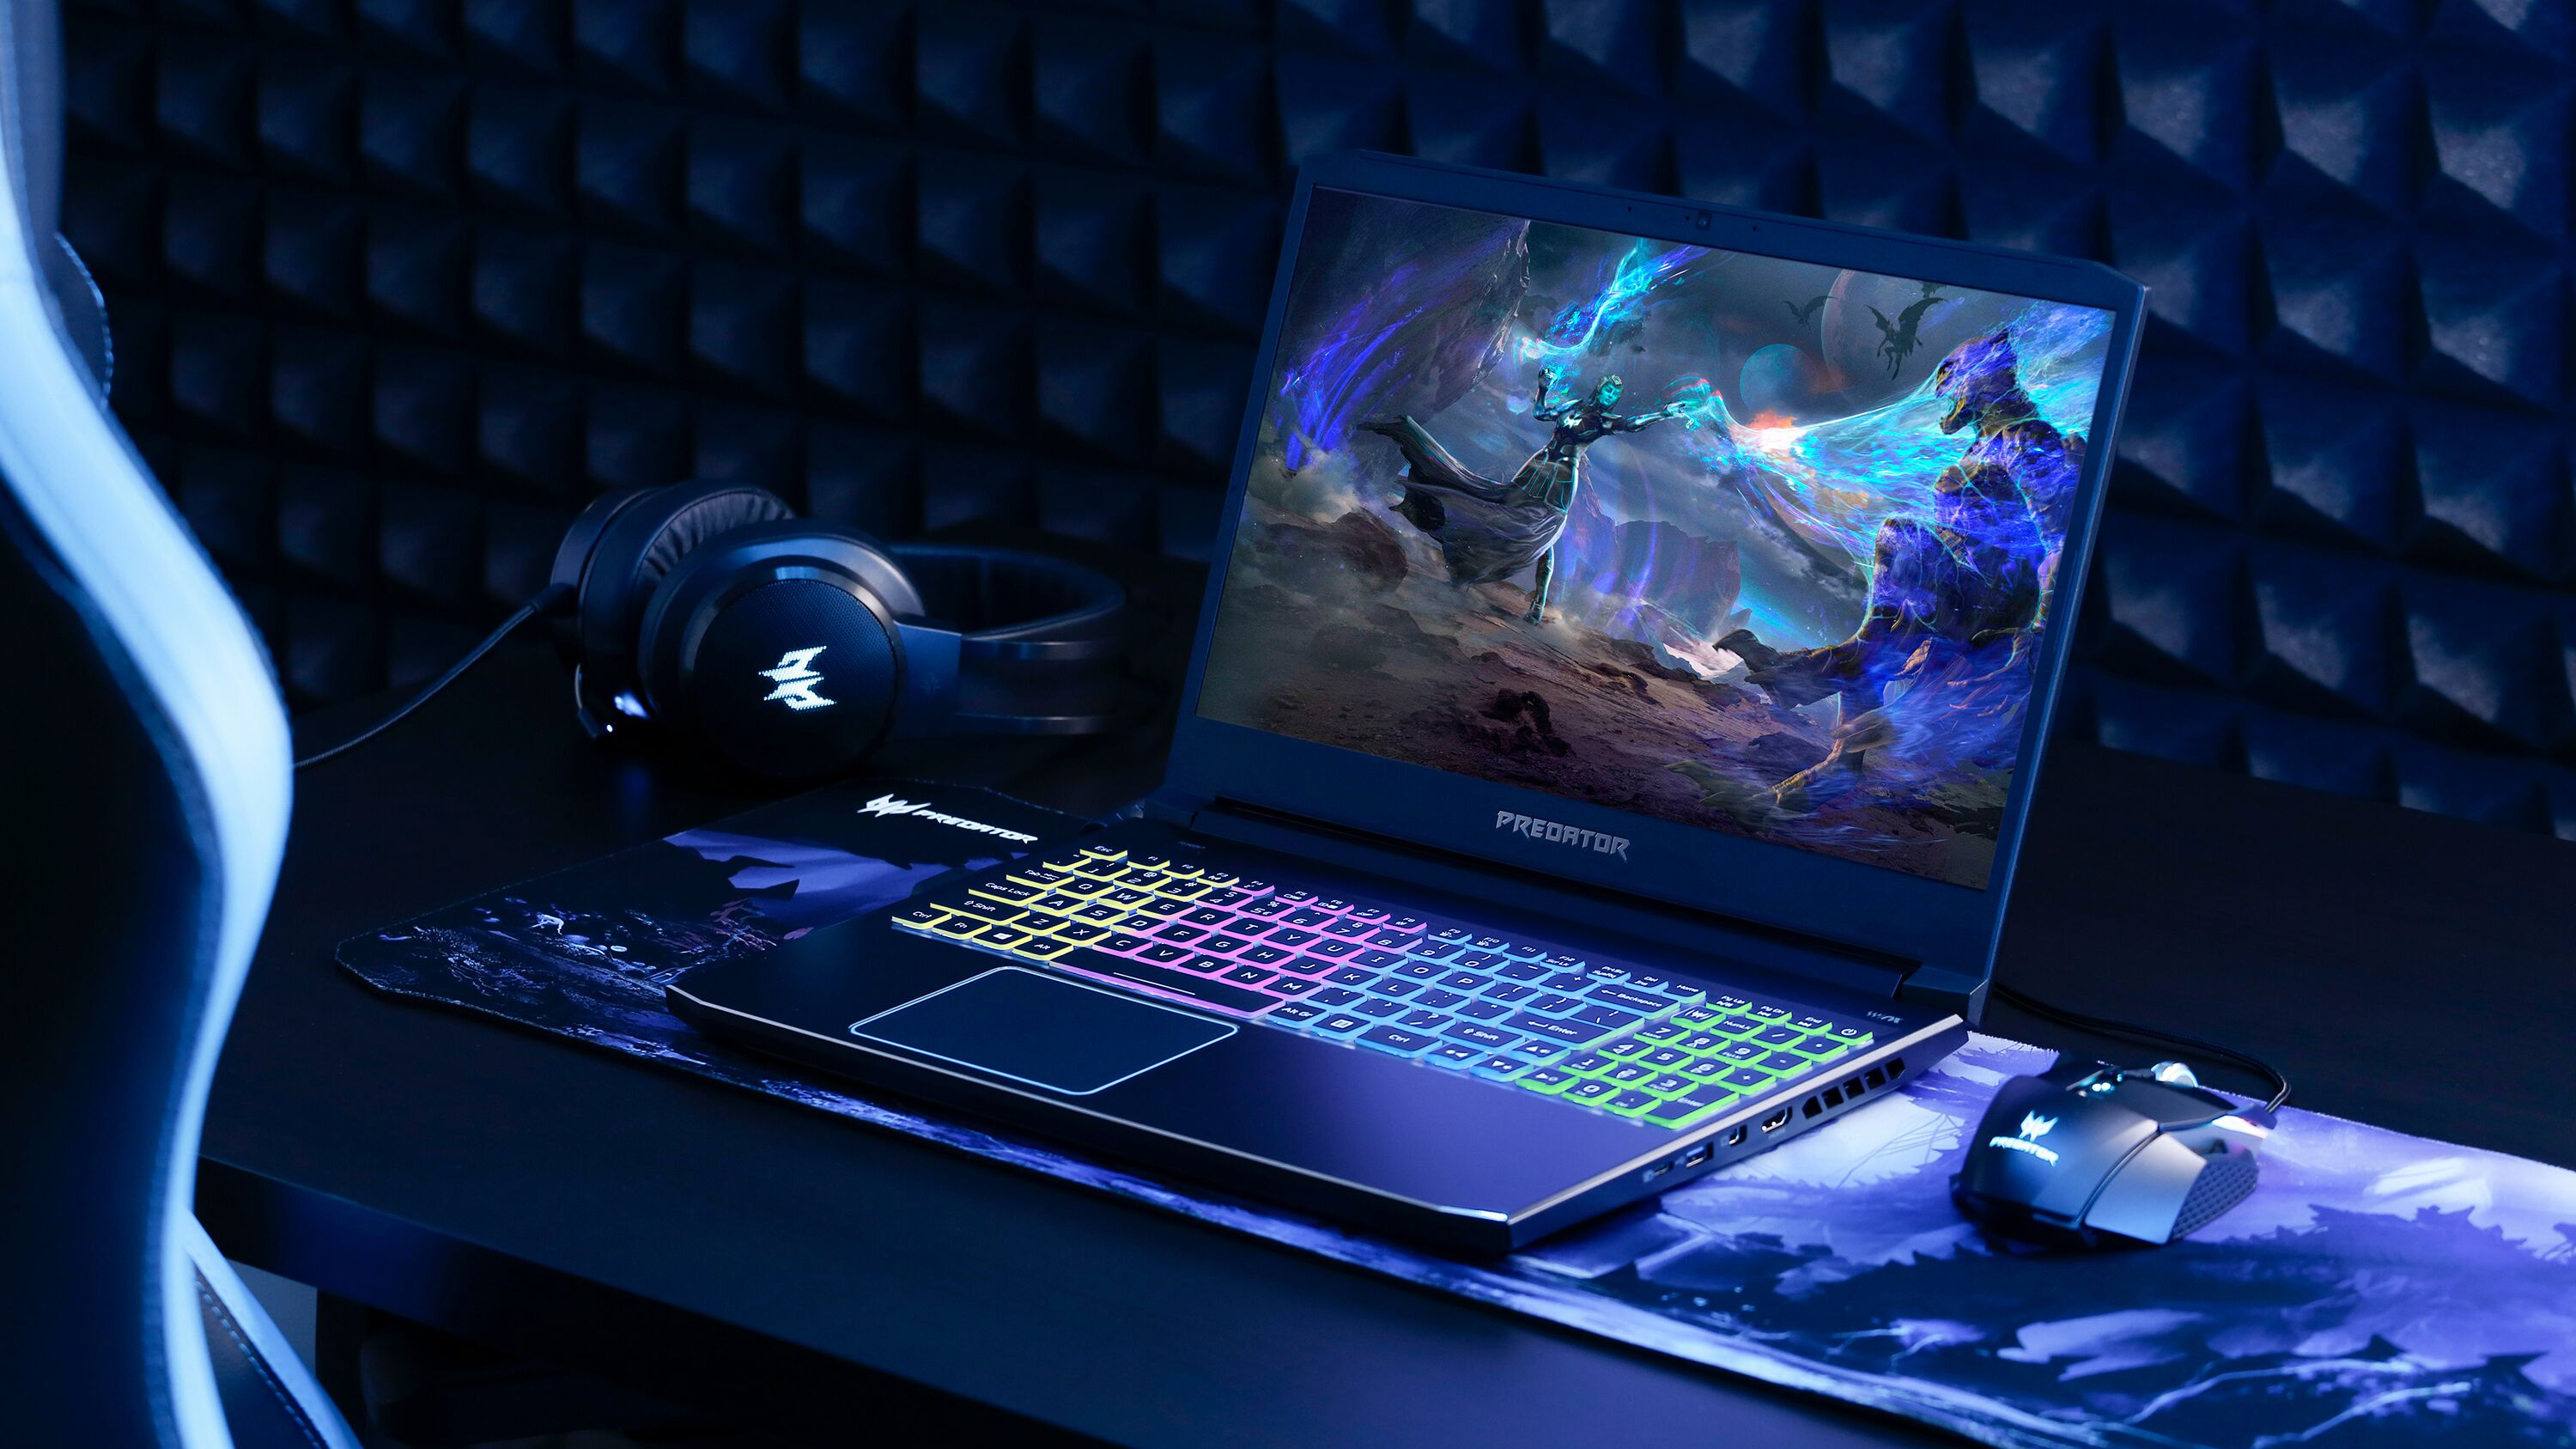 Acer Predator Gaming Laptop Is 200 Off In The Intel Gamer Days Sale At Amazon Techradar